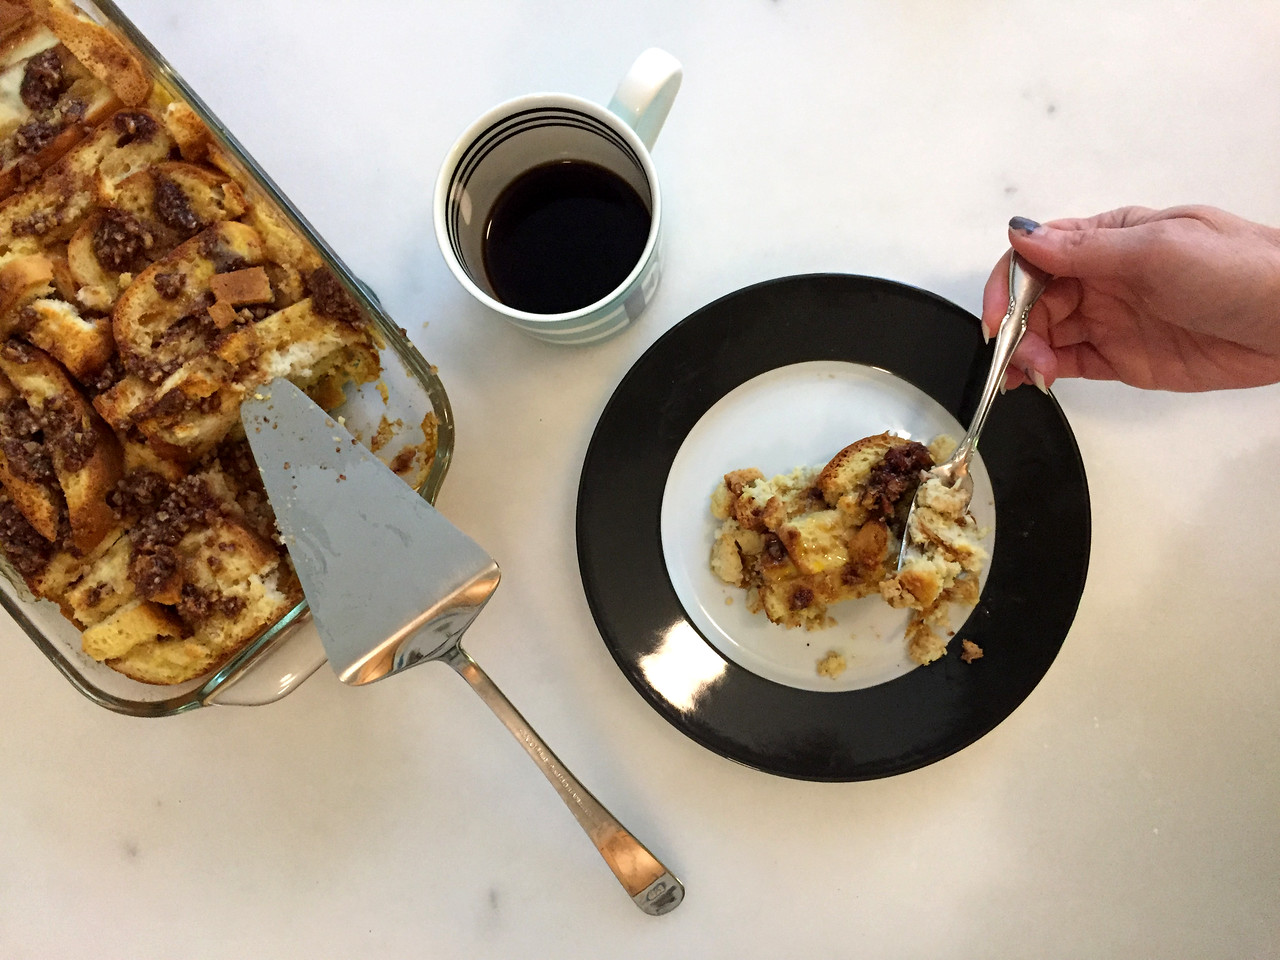 For a weekday breakfast treat, make ahead on the weekend and store as individual portions in the fridge for easy reheating during the week.